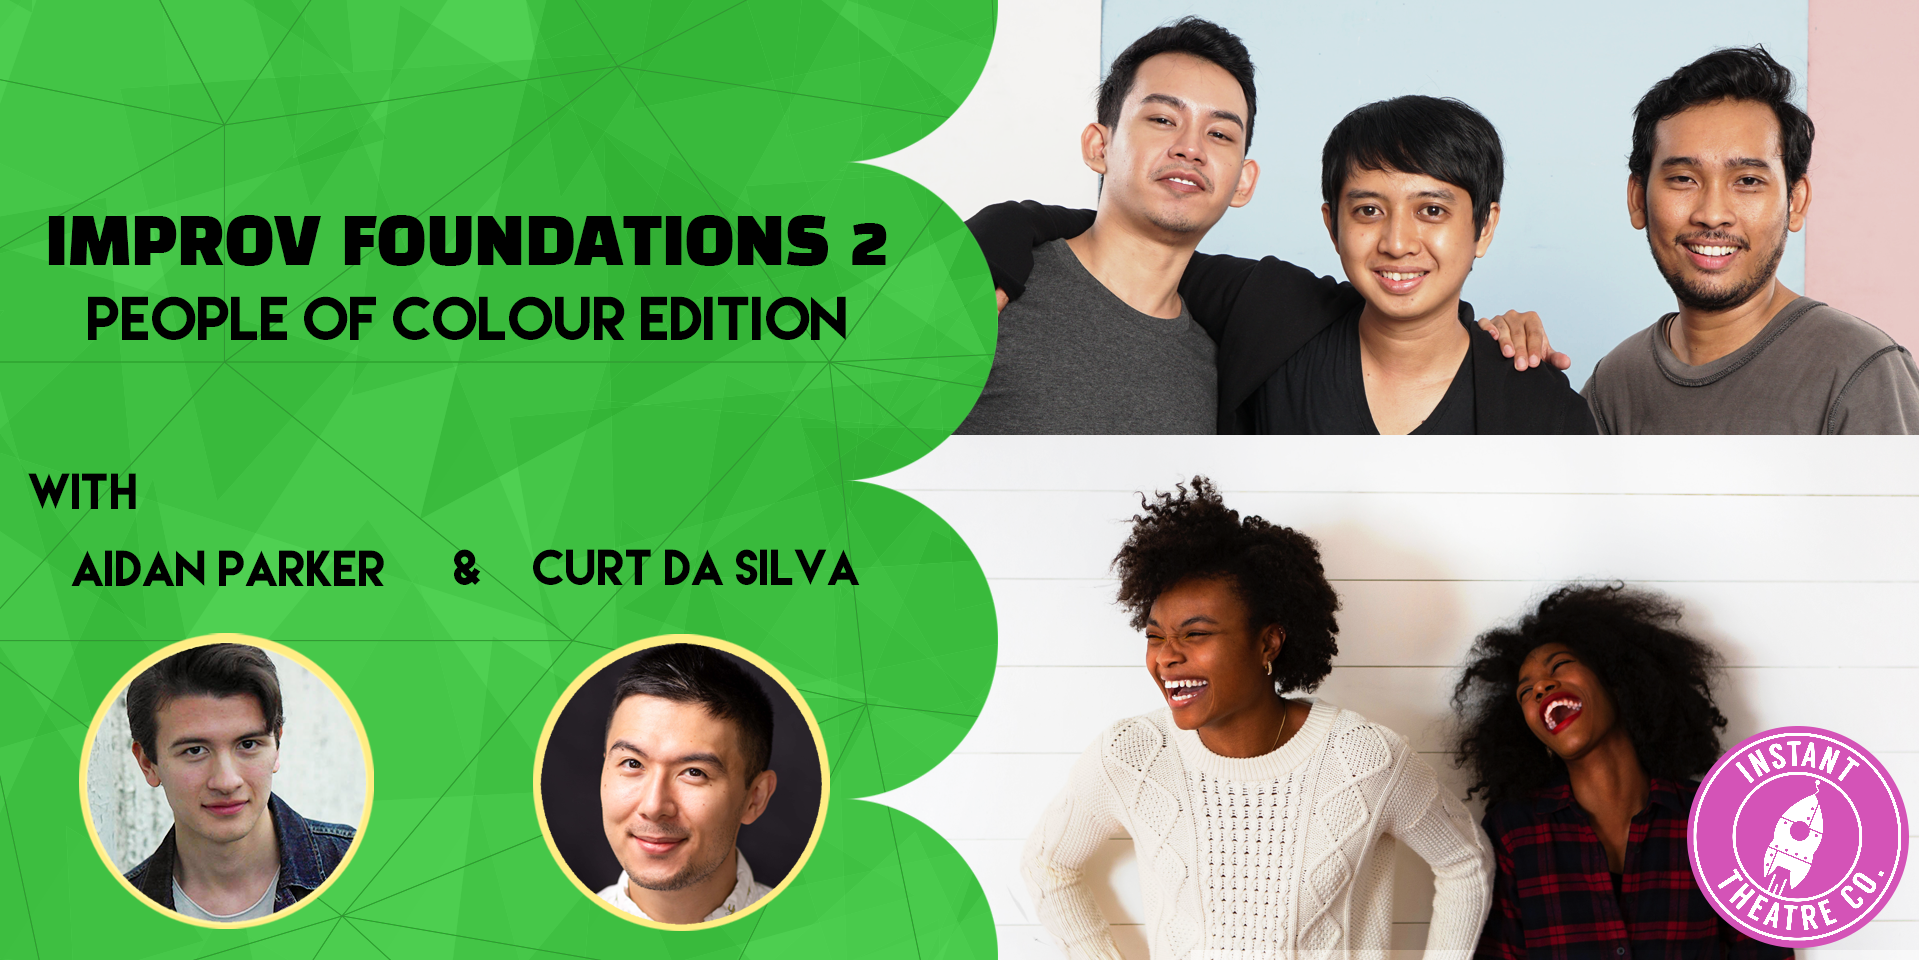 Improv Foundations 2 - People of Colour Edition